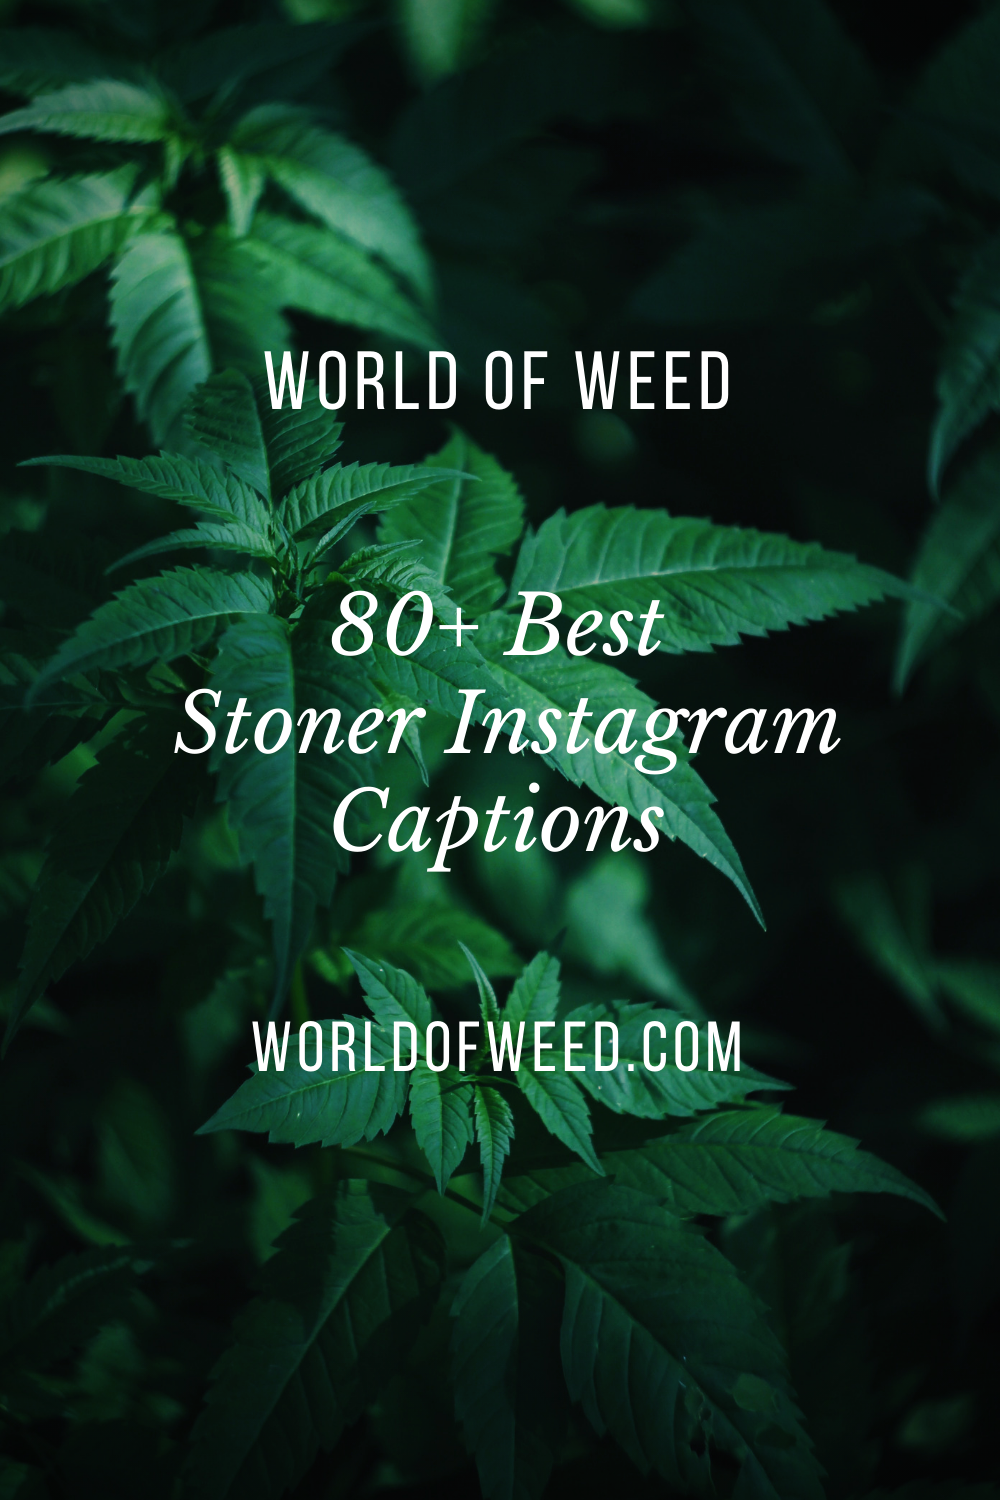 80+ Best Stoner Instagram Captions